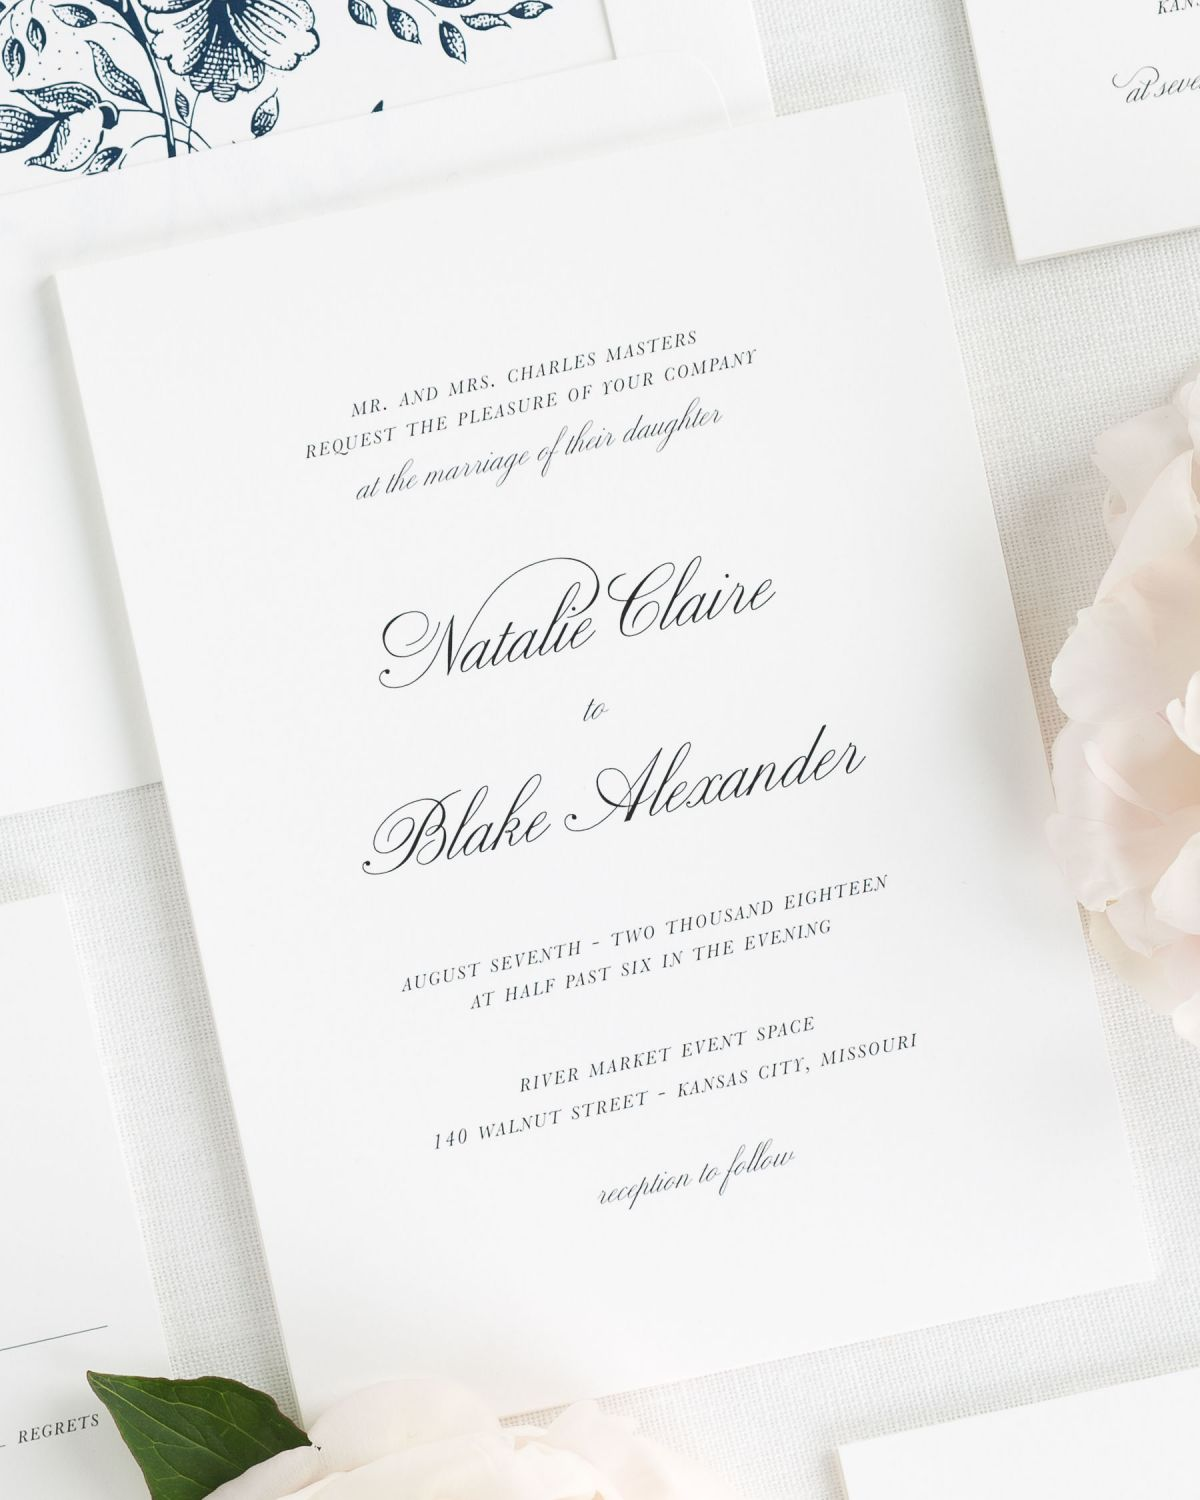 wedding invite scripts - Yeni.mescale.co